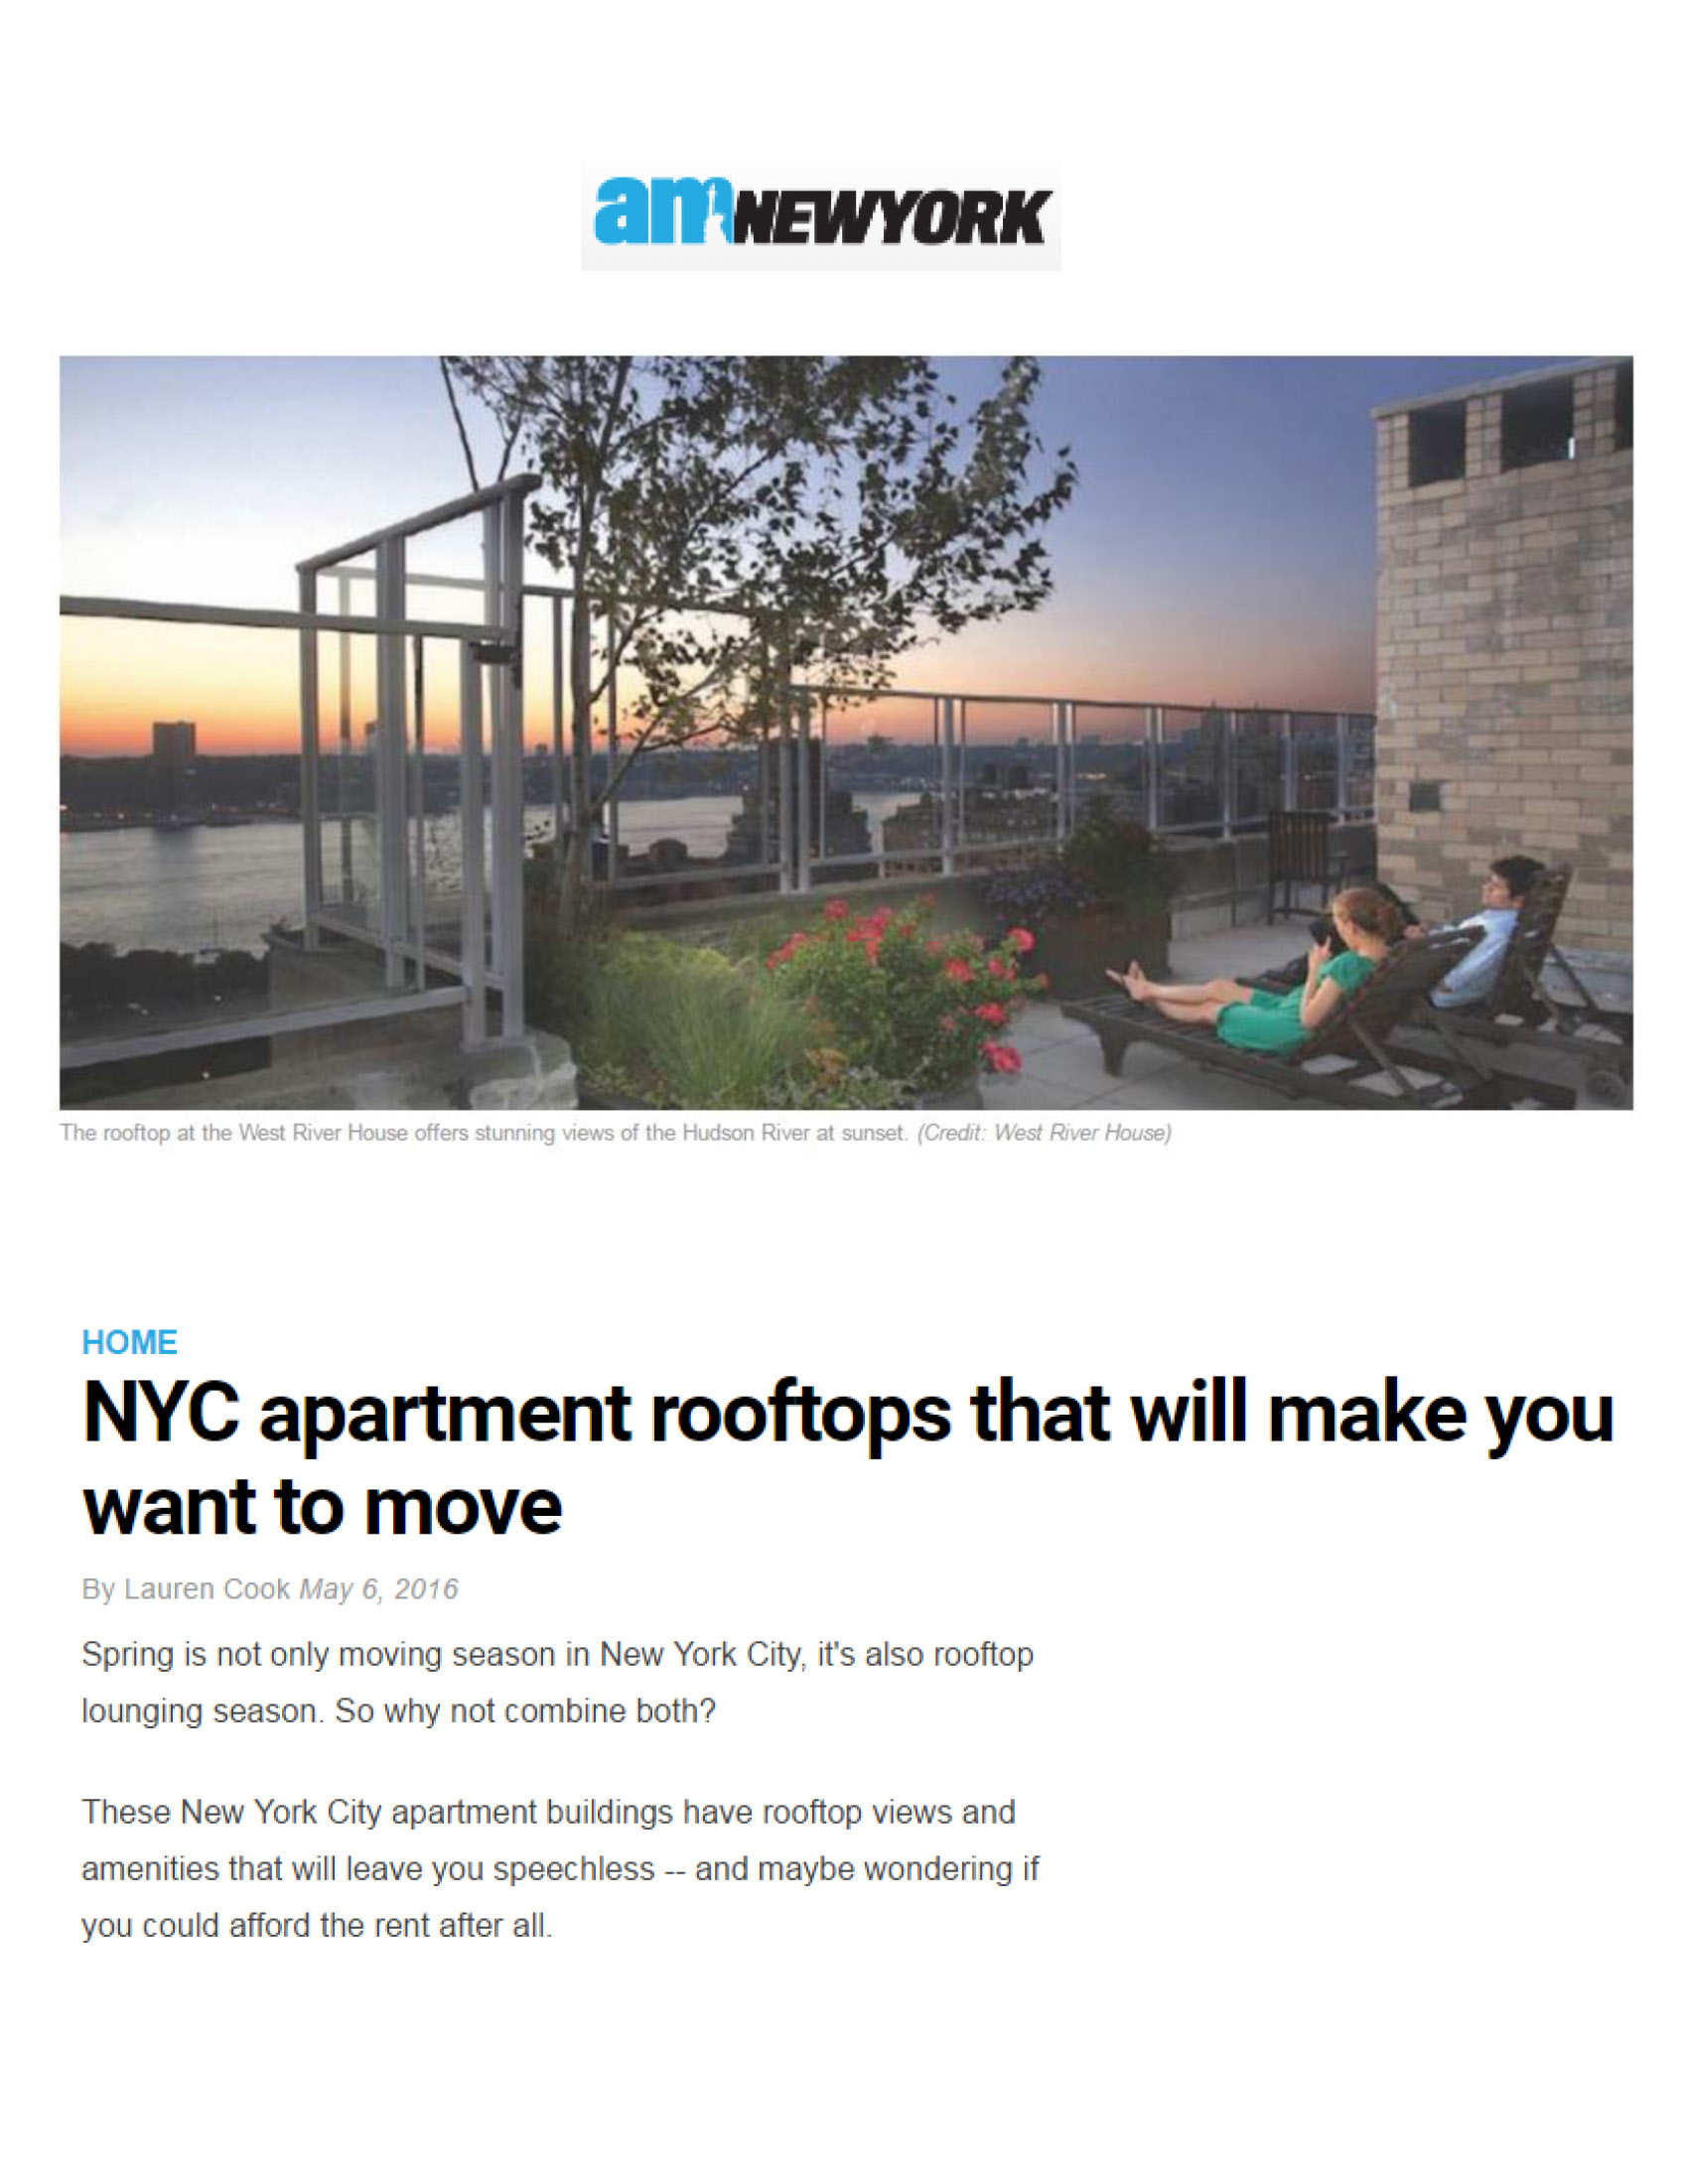 amNEWYORK - NYC apartment rooftops that will make you want to move - 05.... (1)_Page_1